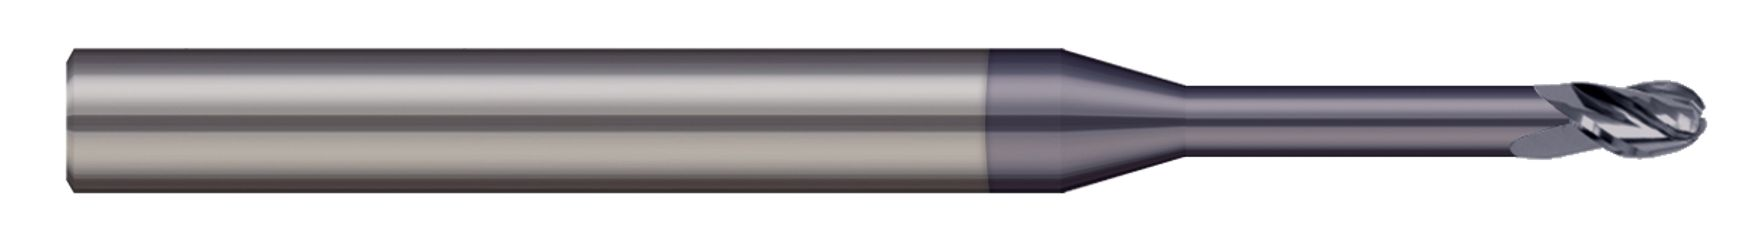 End Mills for Steels & High Temperature Alloys - Ball - 2 & 3 Flute - Long Reach, Stub Flute